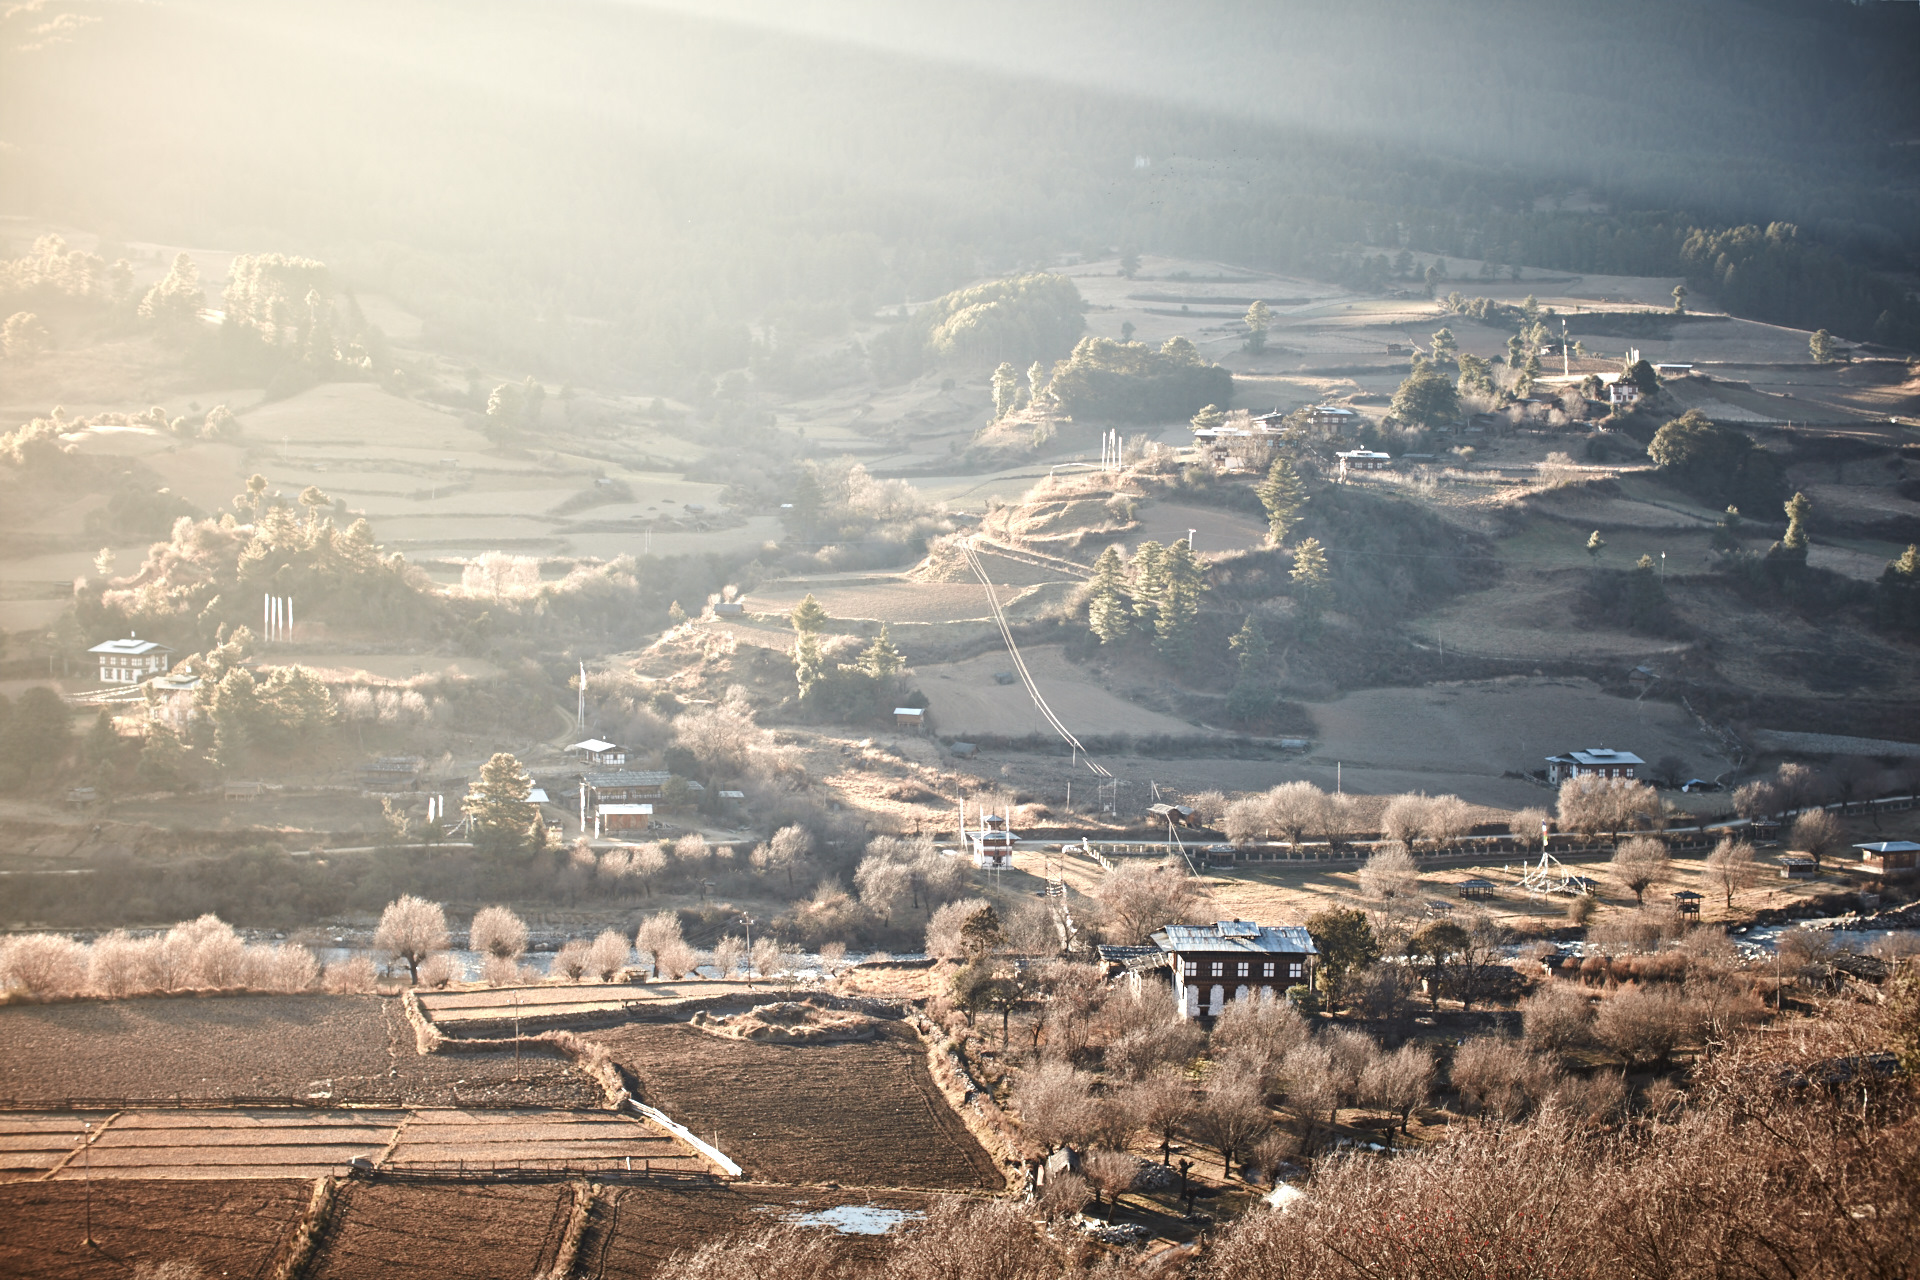 Chasing the light in Central Bumthang